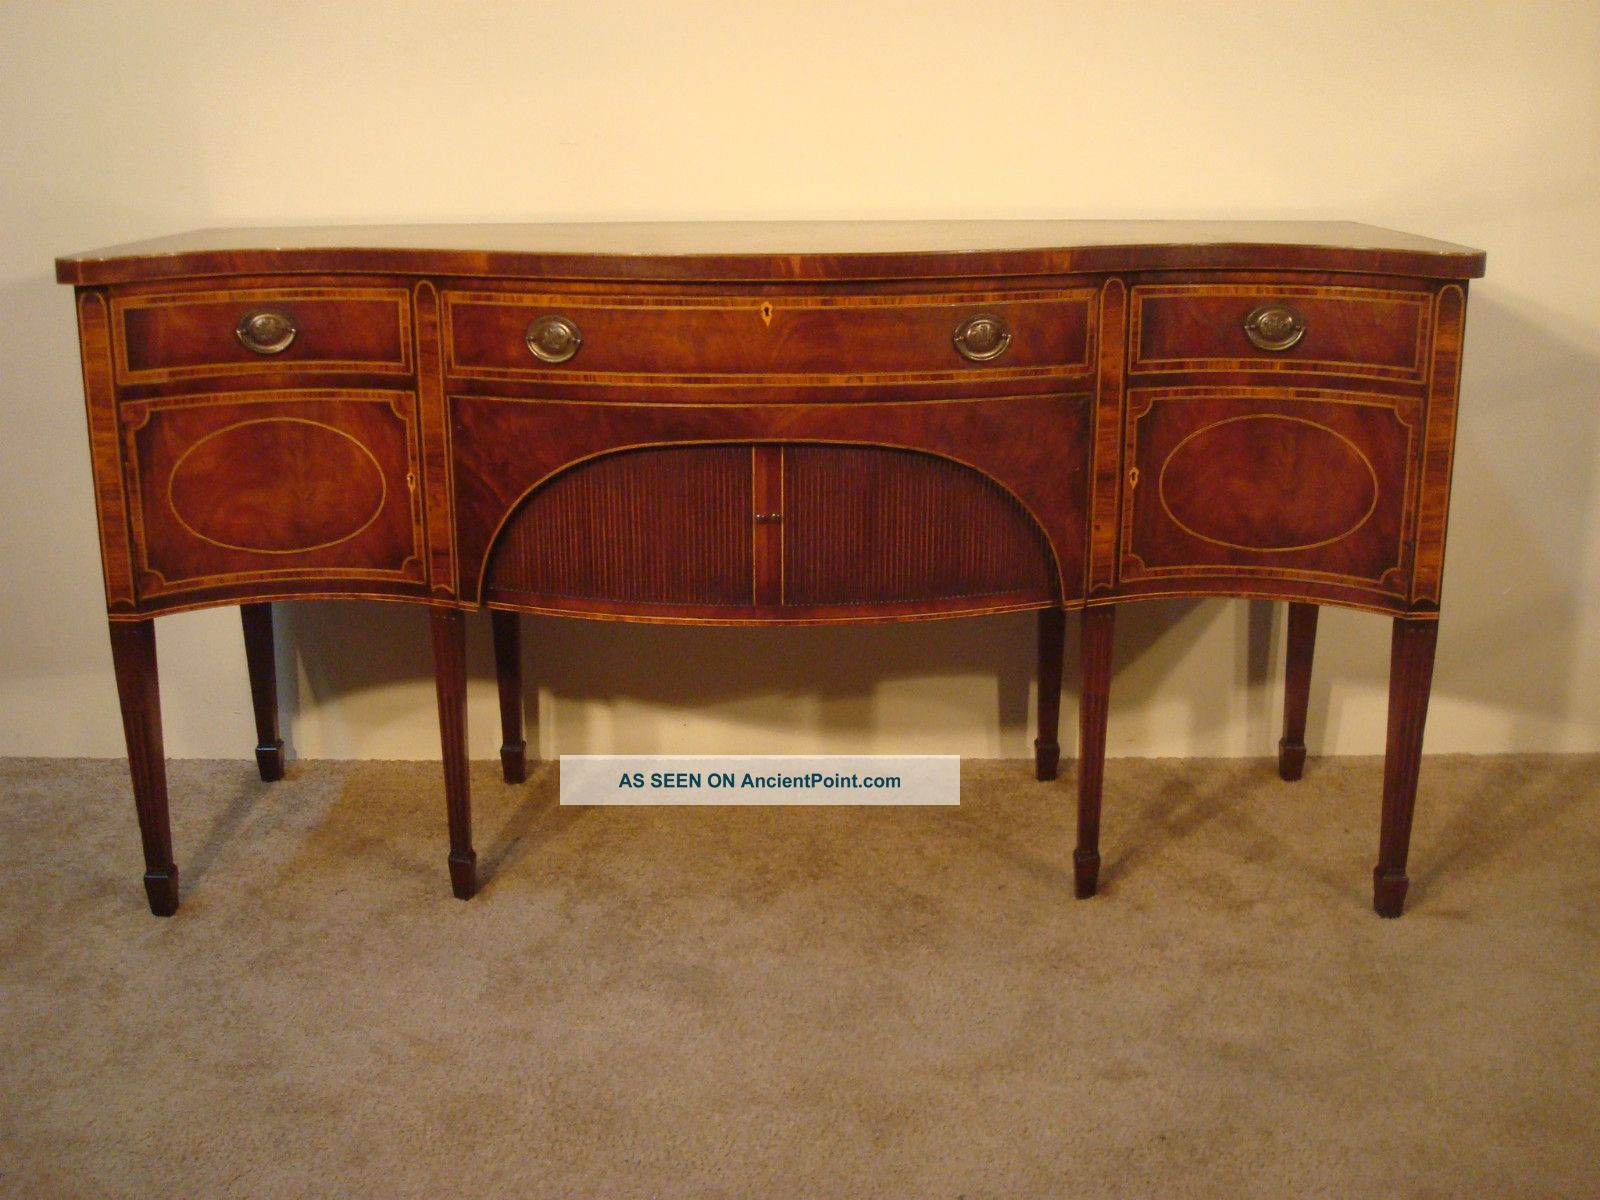 Antique Baker Furniture Company Inlaid Mahogany 8 - Leg Hepplewhite Sideboard Post-1950 photo